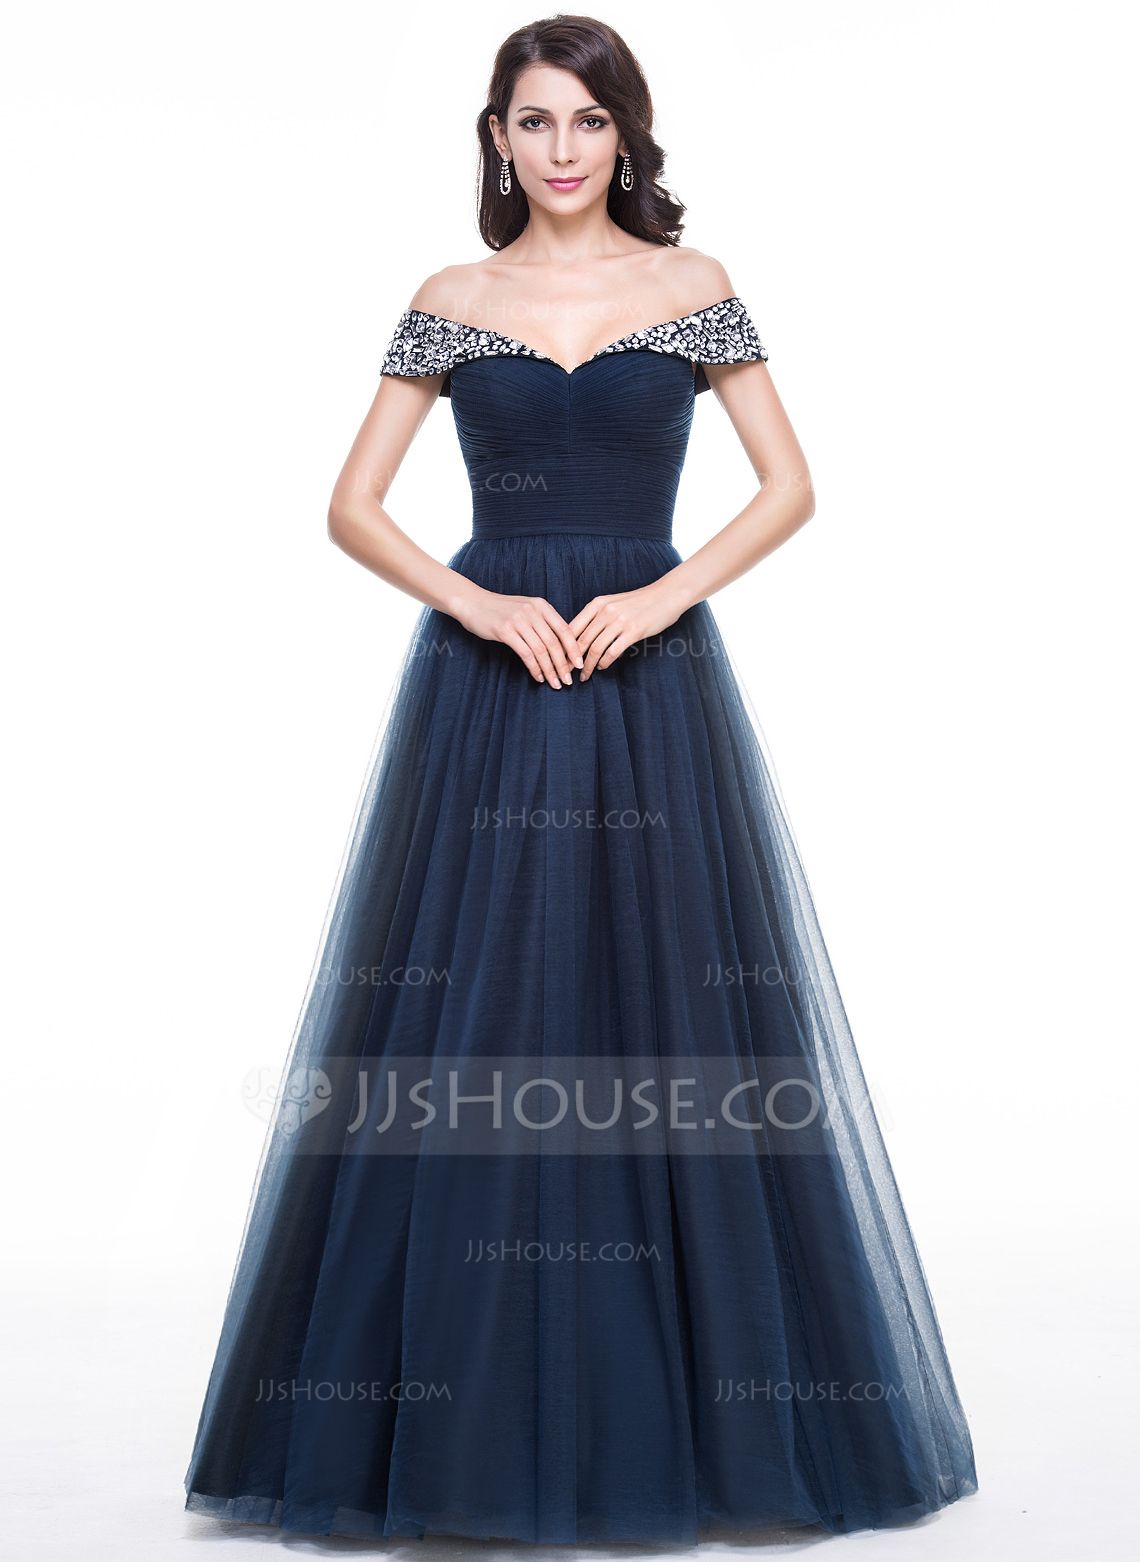 Casual wedding dresses for winter wedding  BallGown OfftheShoulder FloorLength Tulle Evening Dress With